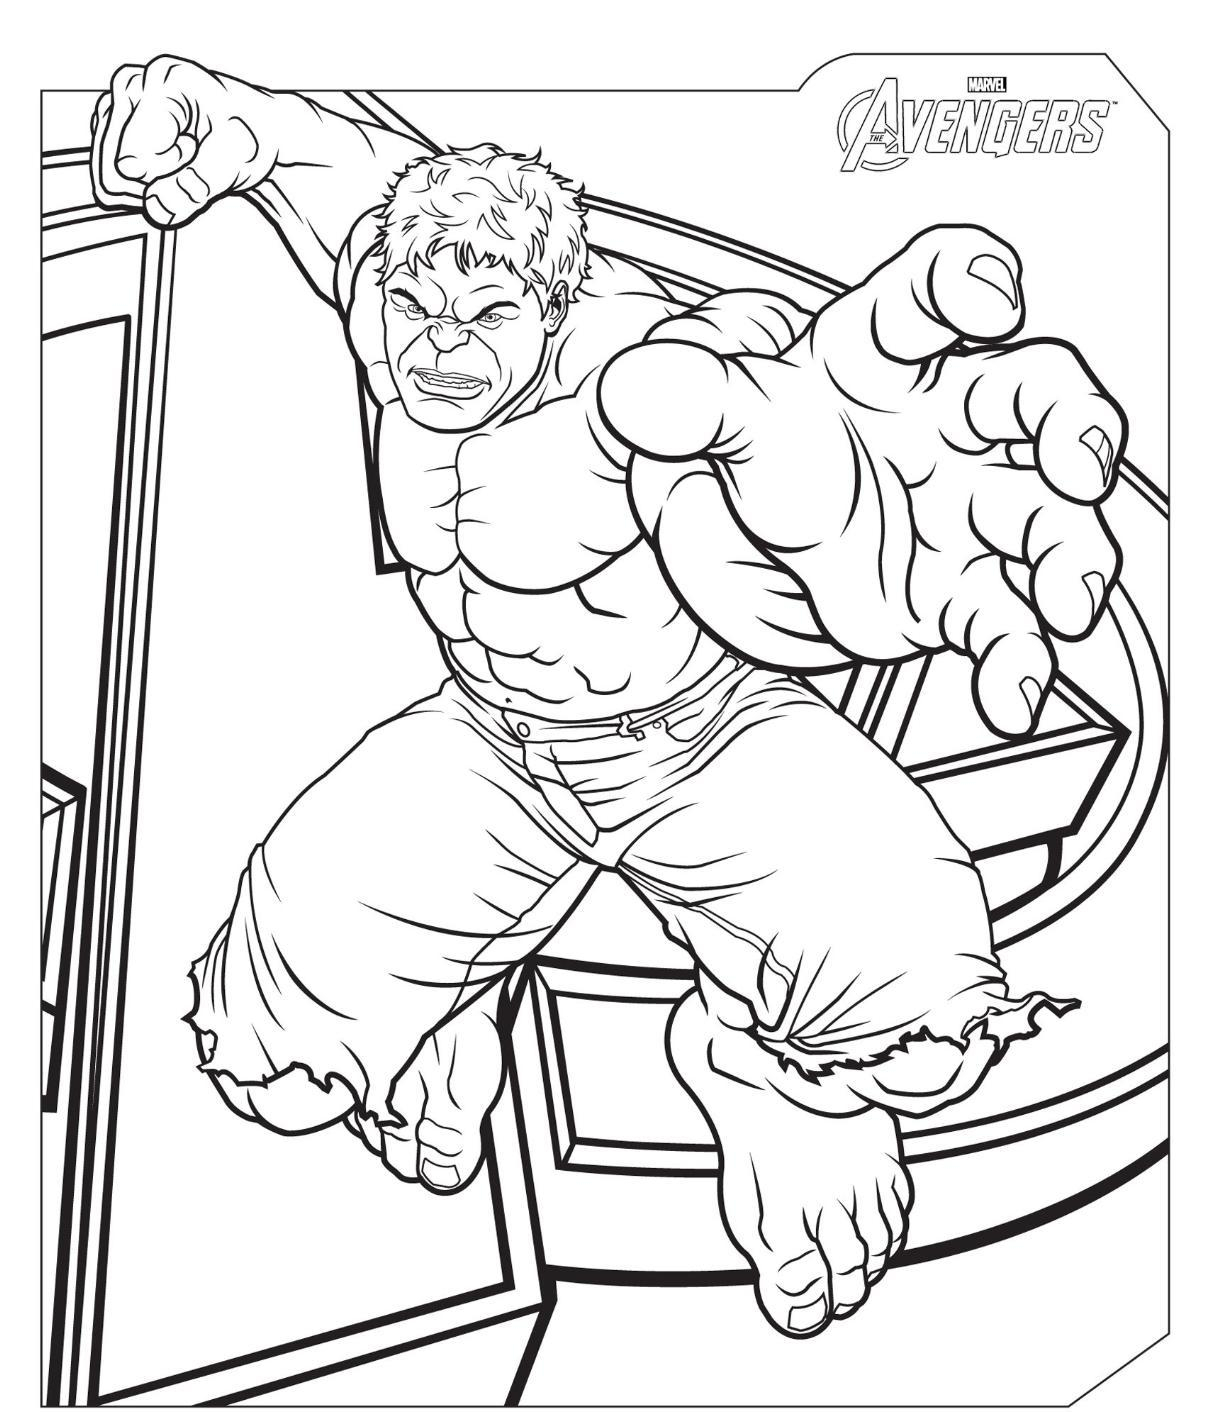 Good Avengers Coloring Pages Free Printable Download